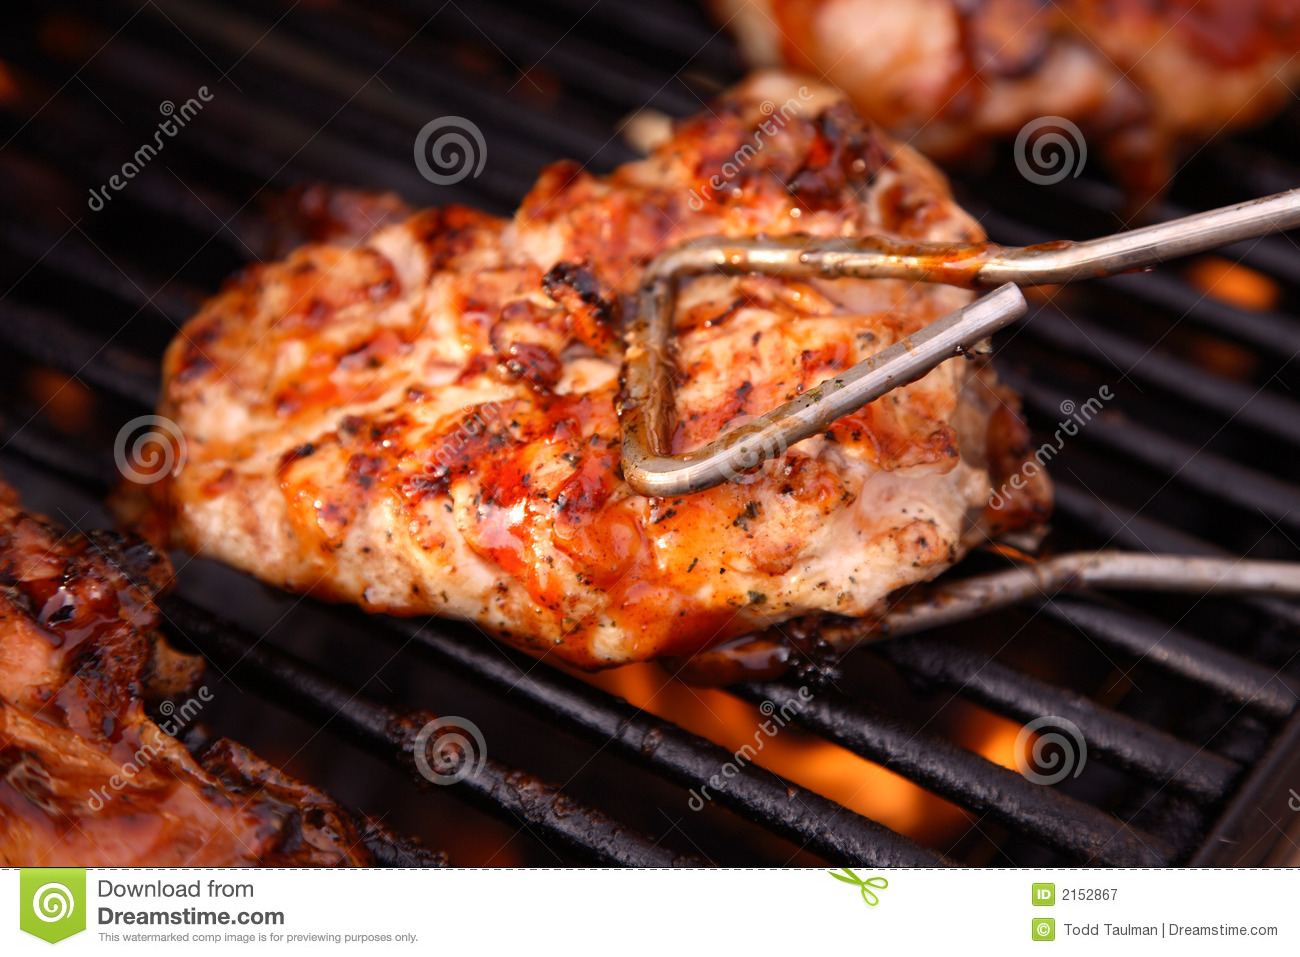 Barbeque Chicken On The Grill Royalty Free Stock Photography - Image ...